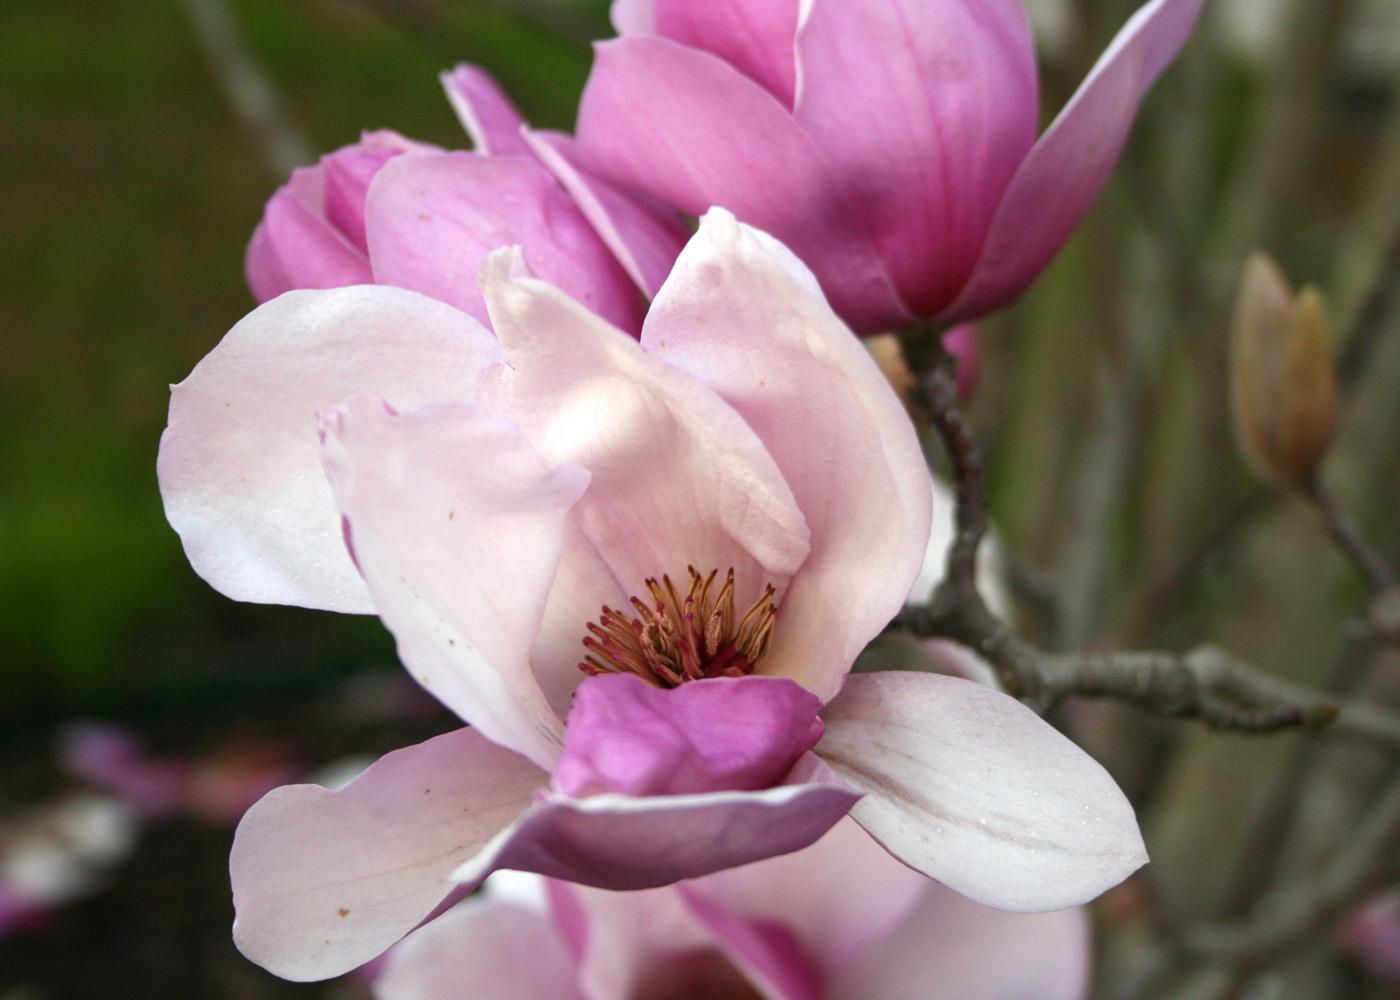 The exotic saucer magnolia, with its beautiful flowers and fragrance, is the most popular of the flowering magnolias. (Photo by Gary Bachman)